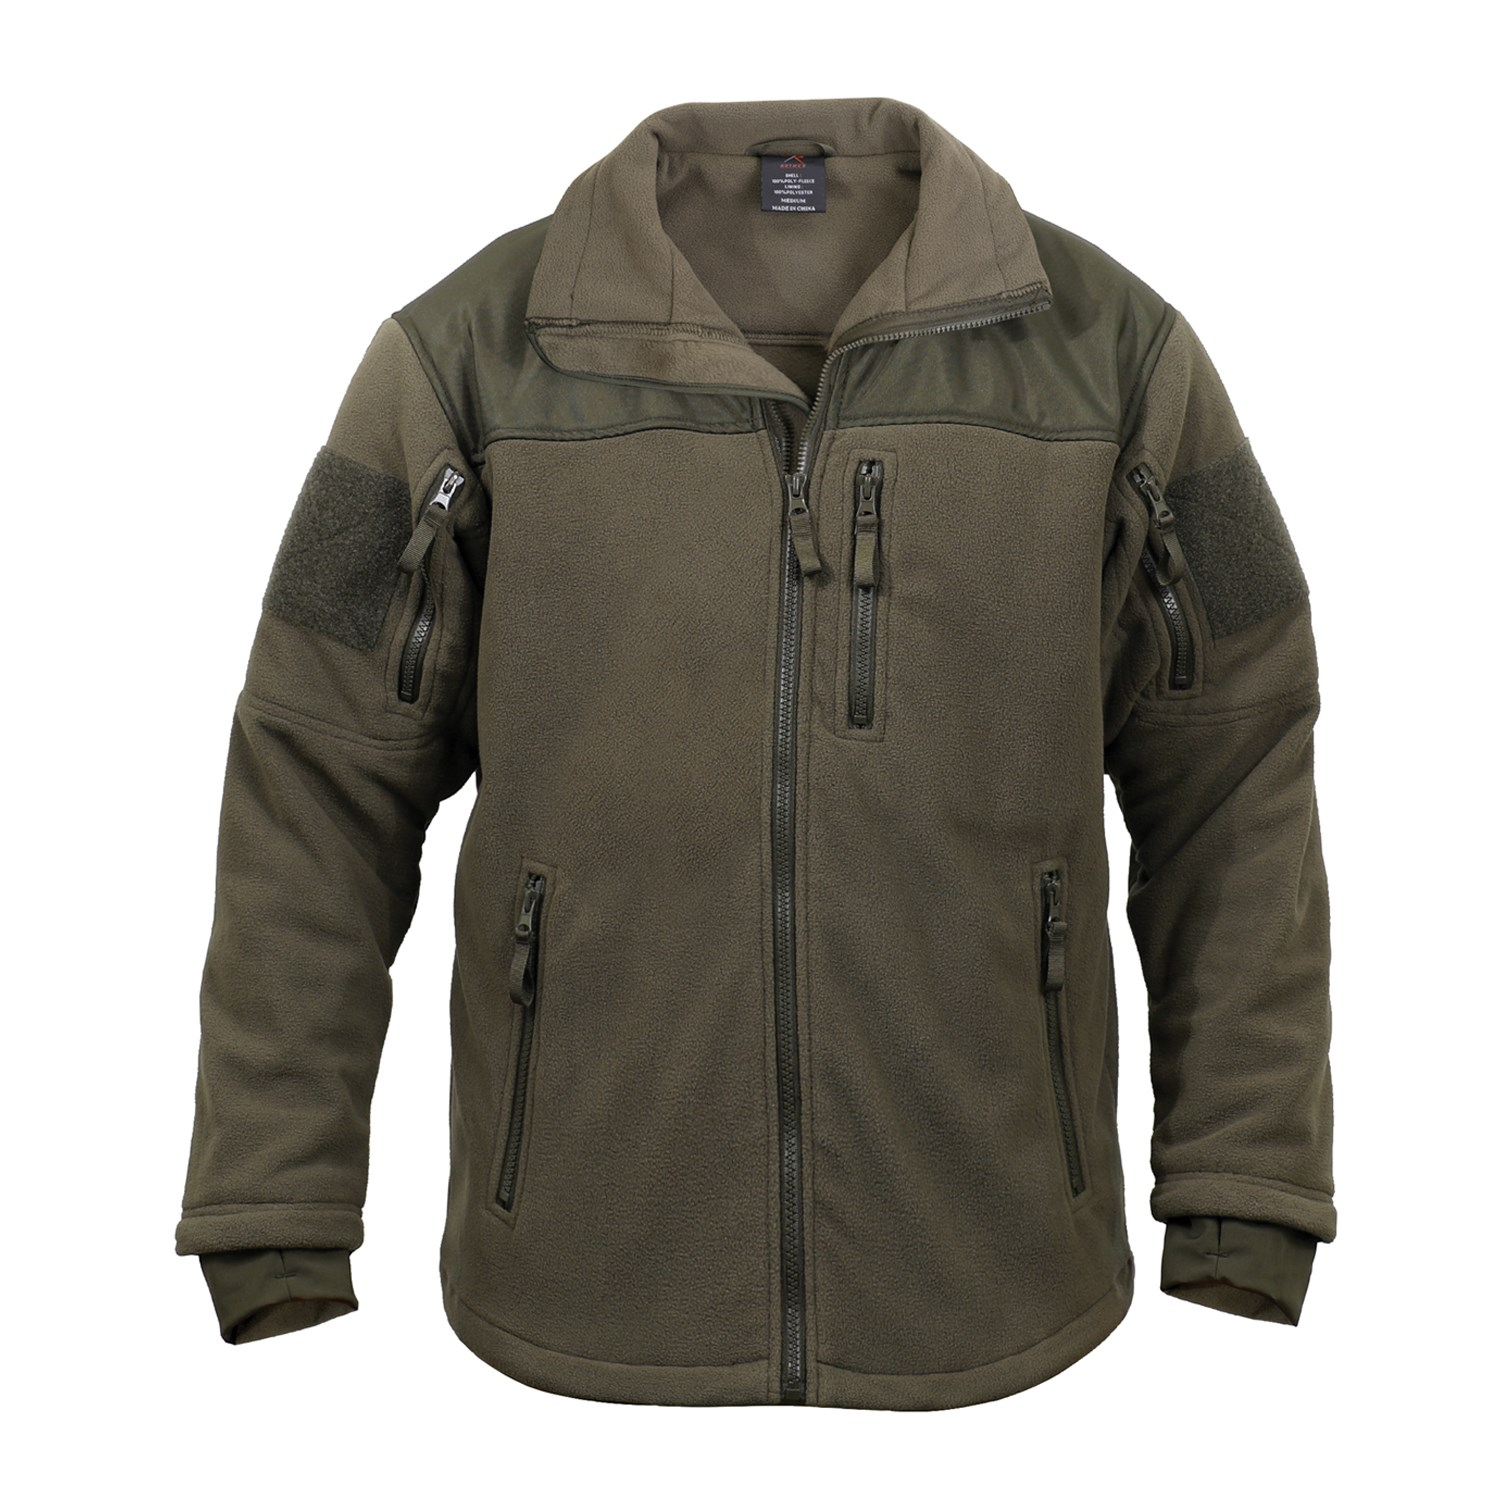 Fleece jacket SPEC OPS OLIVE DRAB ROTHCO 96675 L-11